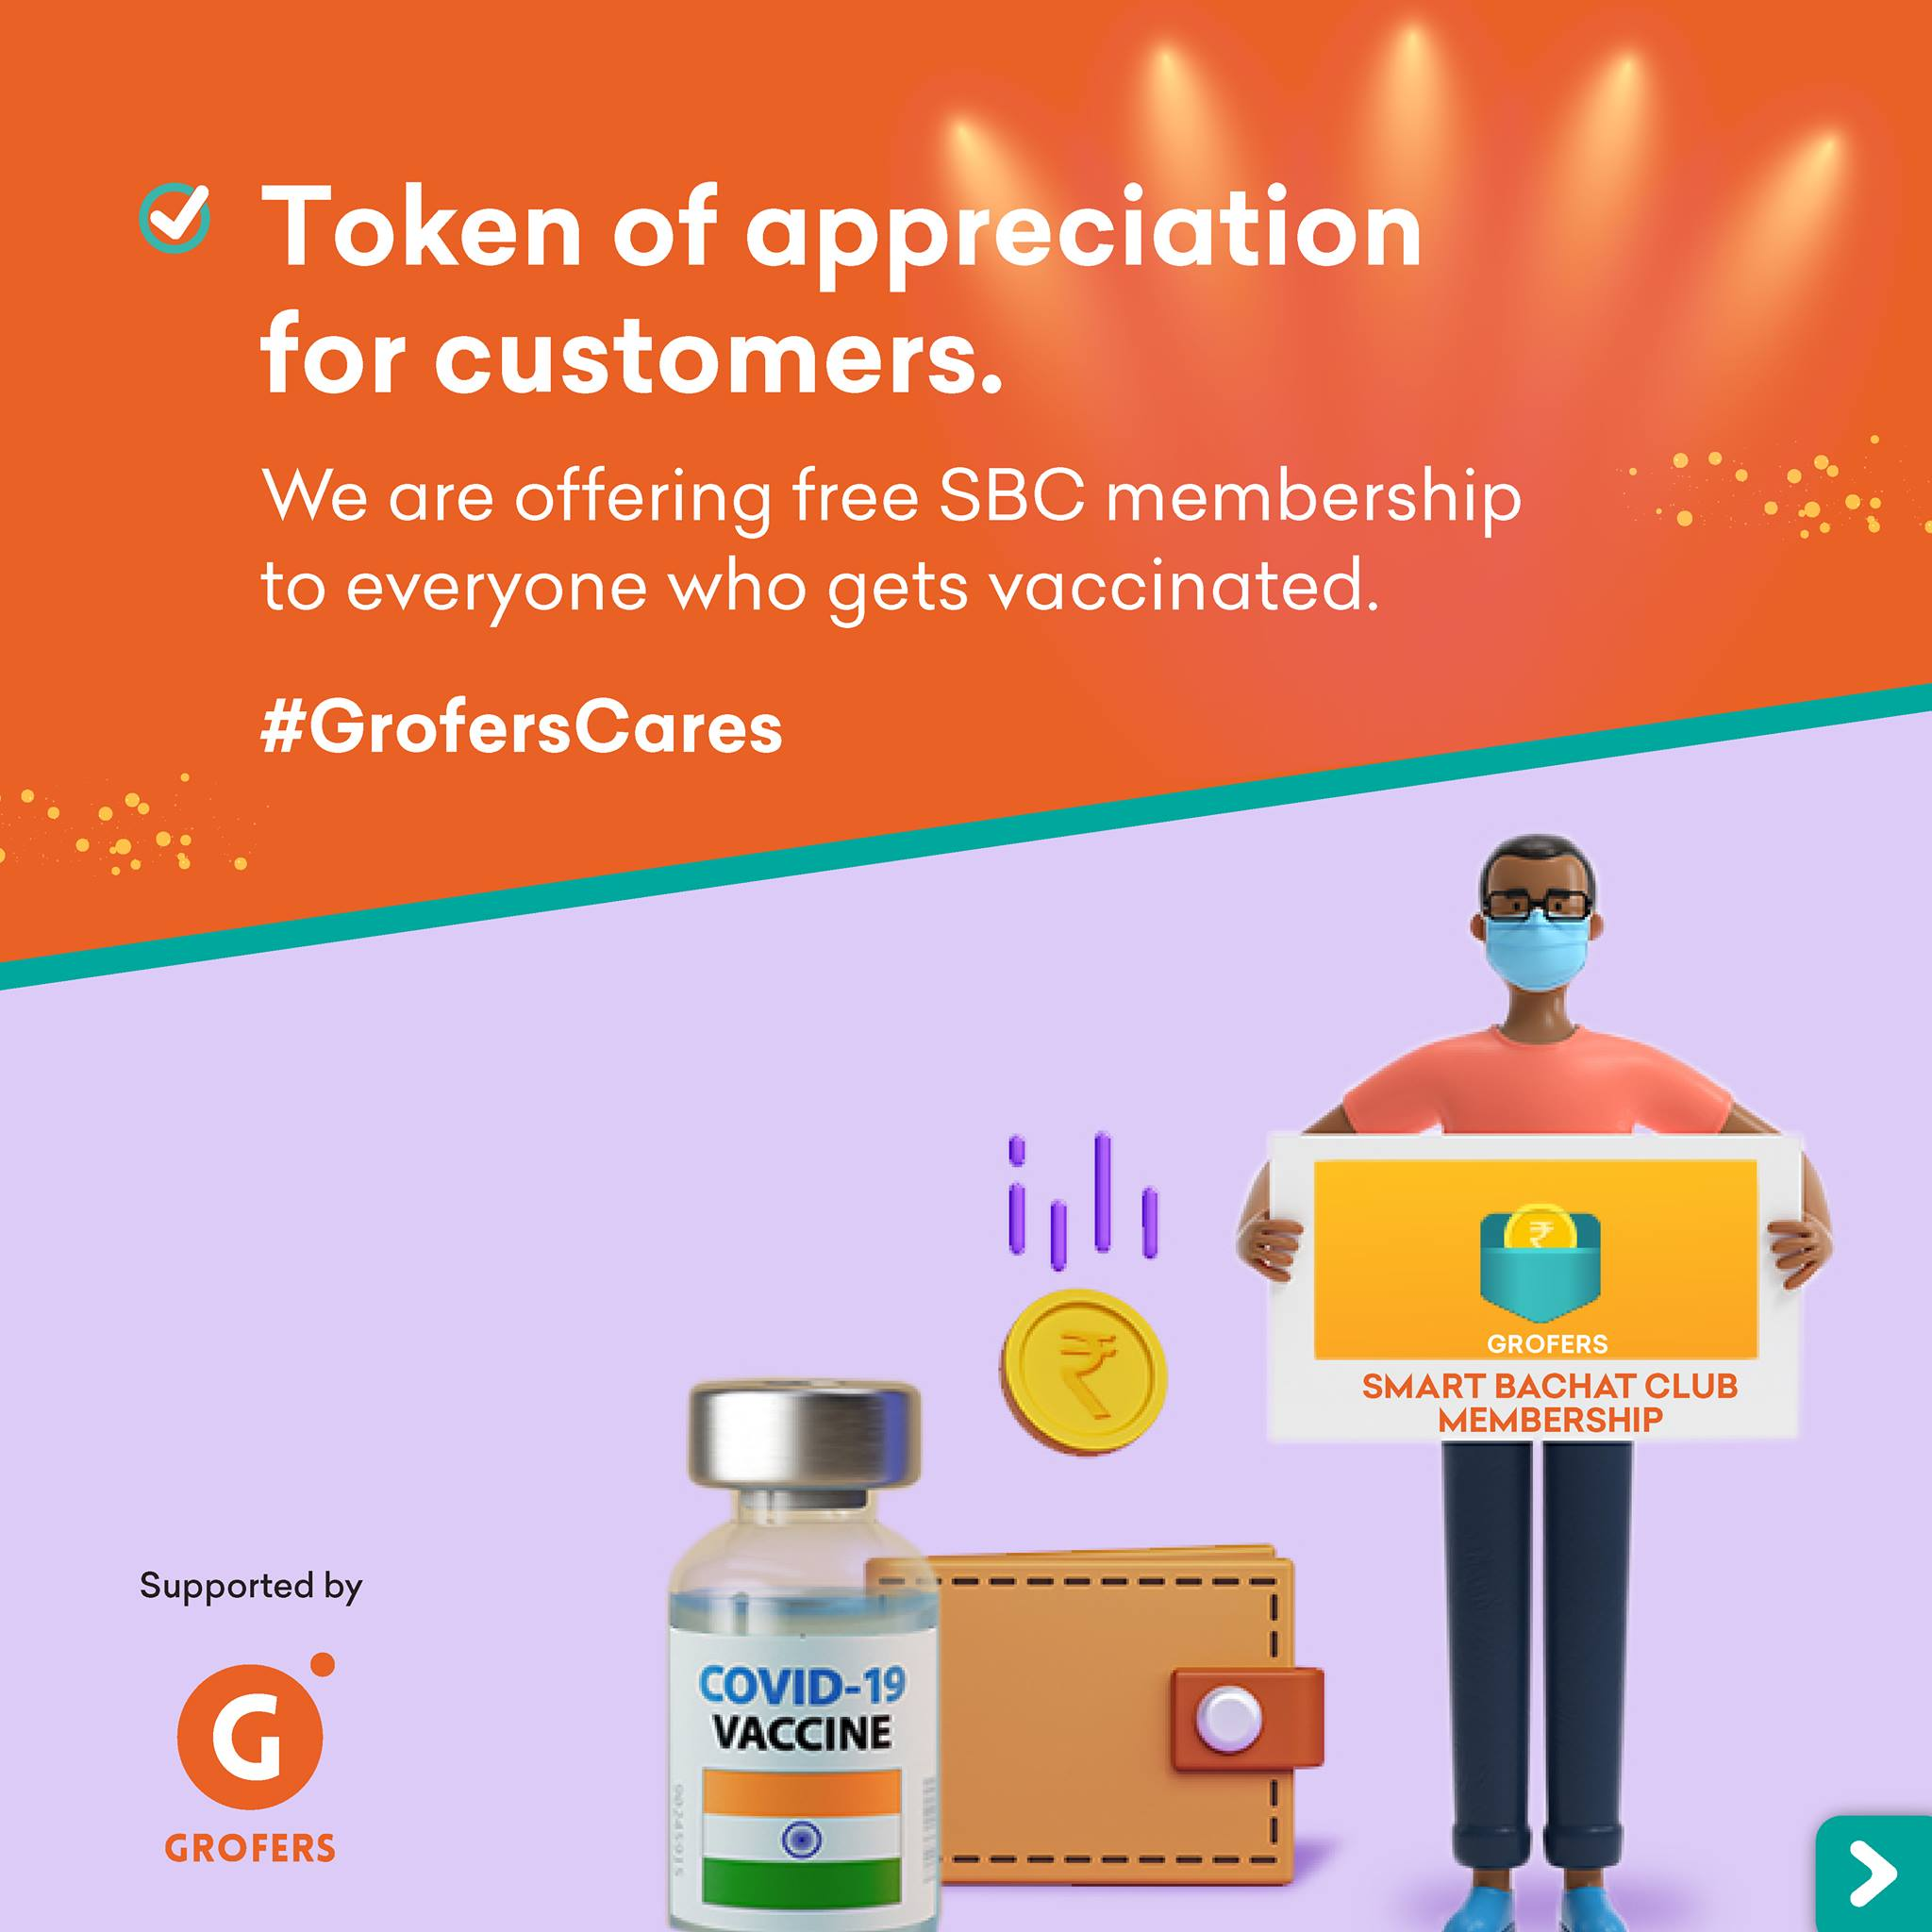 Grofers is offering a month of free SMart Bachat Club Membership to anyone who gets vaccinated